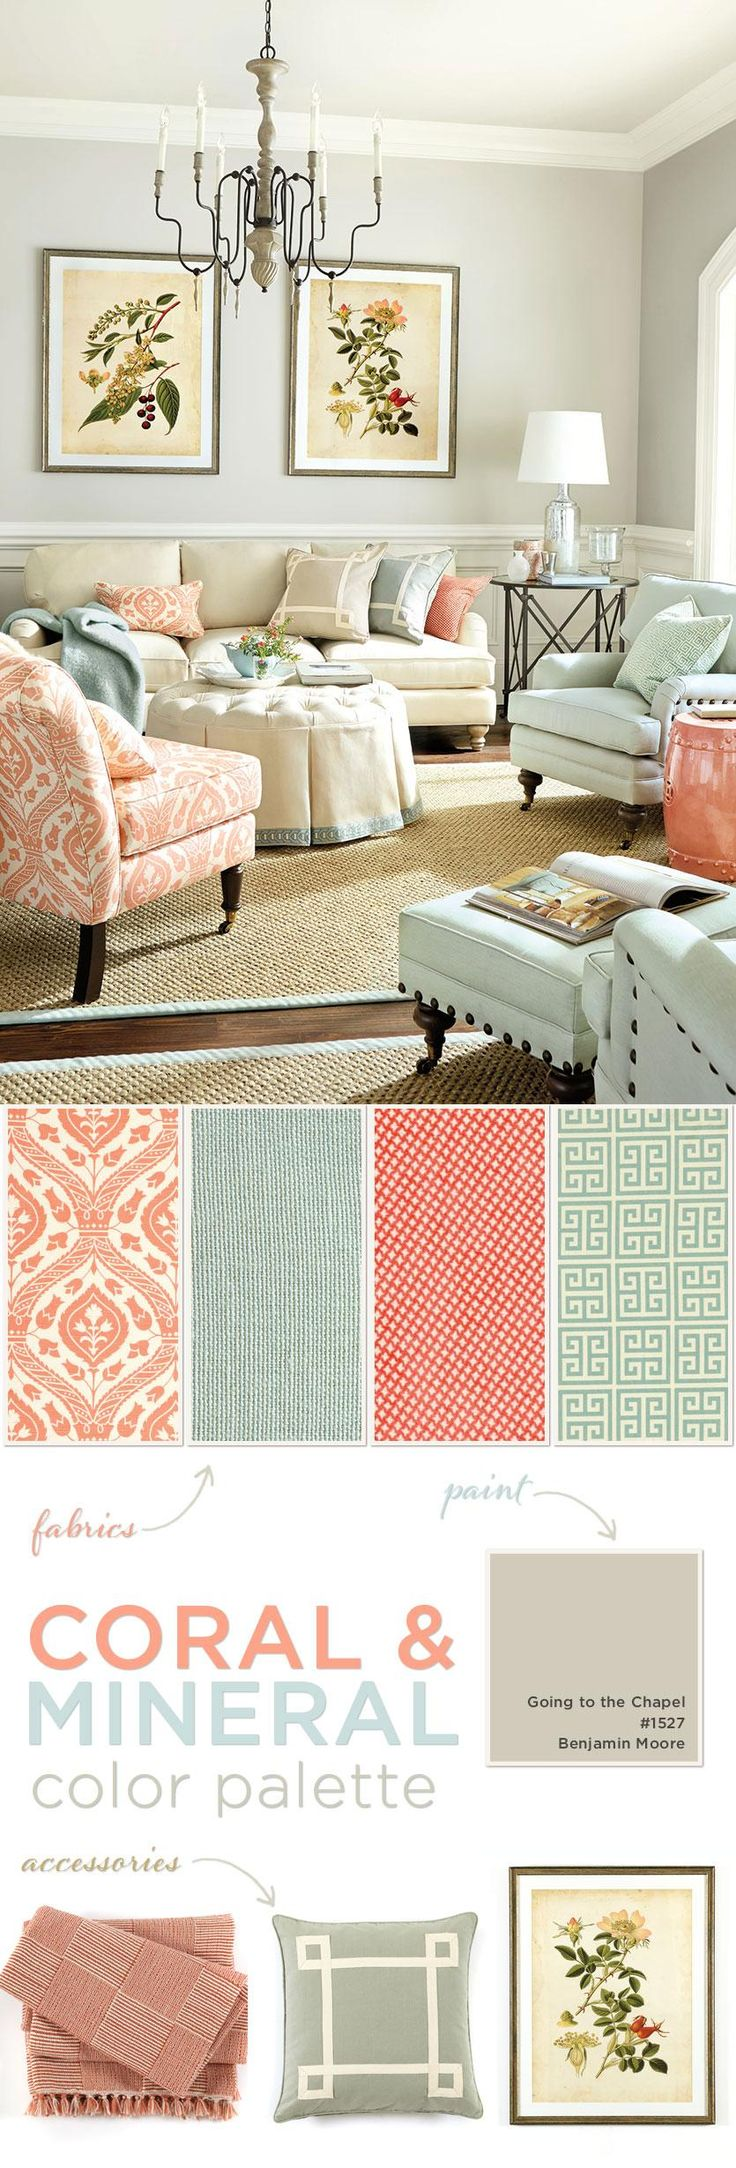 Perfect Living Room Colors For Light Furniture And Mineral Color Palette A Inside Design Decorating